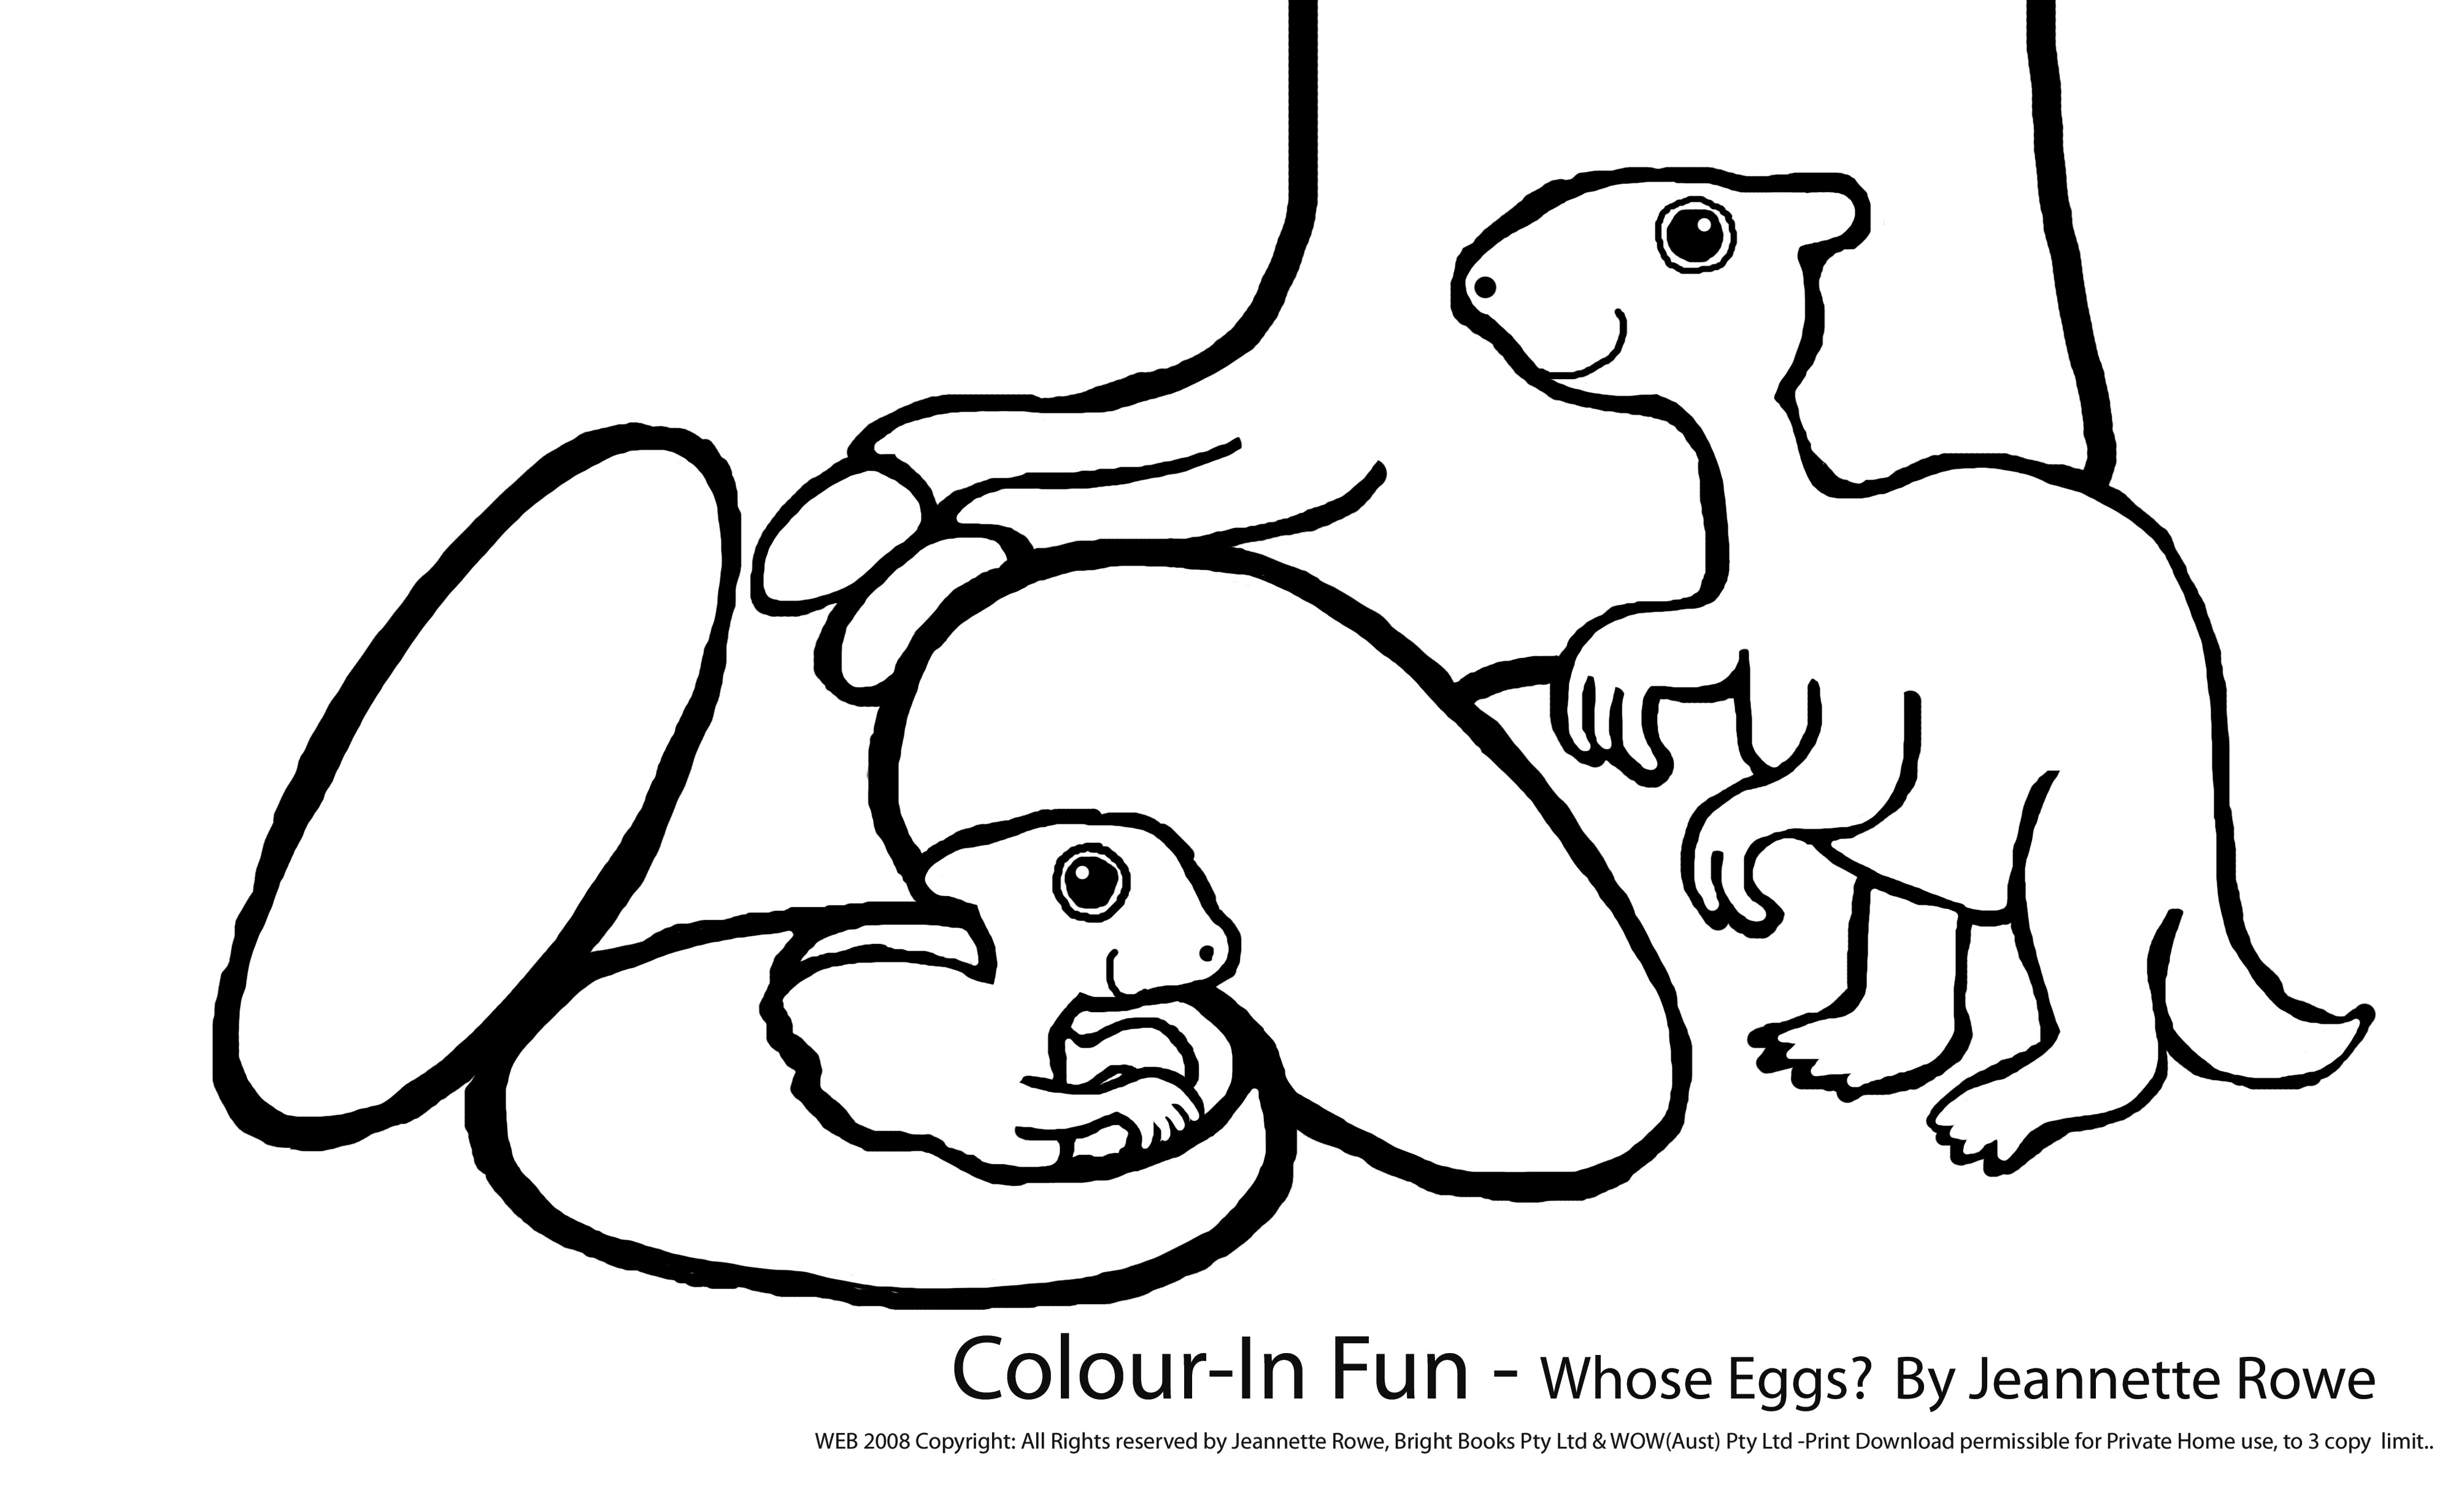 cute animal coloring pages monkey dinosaur coloring pages - Cute Baby Dinosaur Coloring Pages